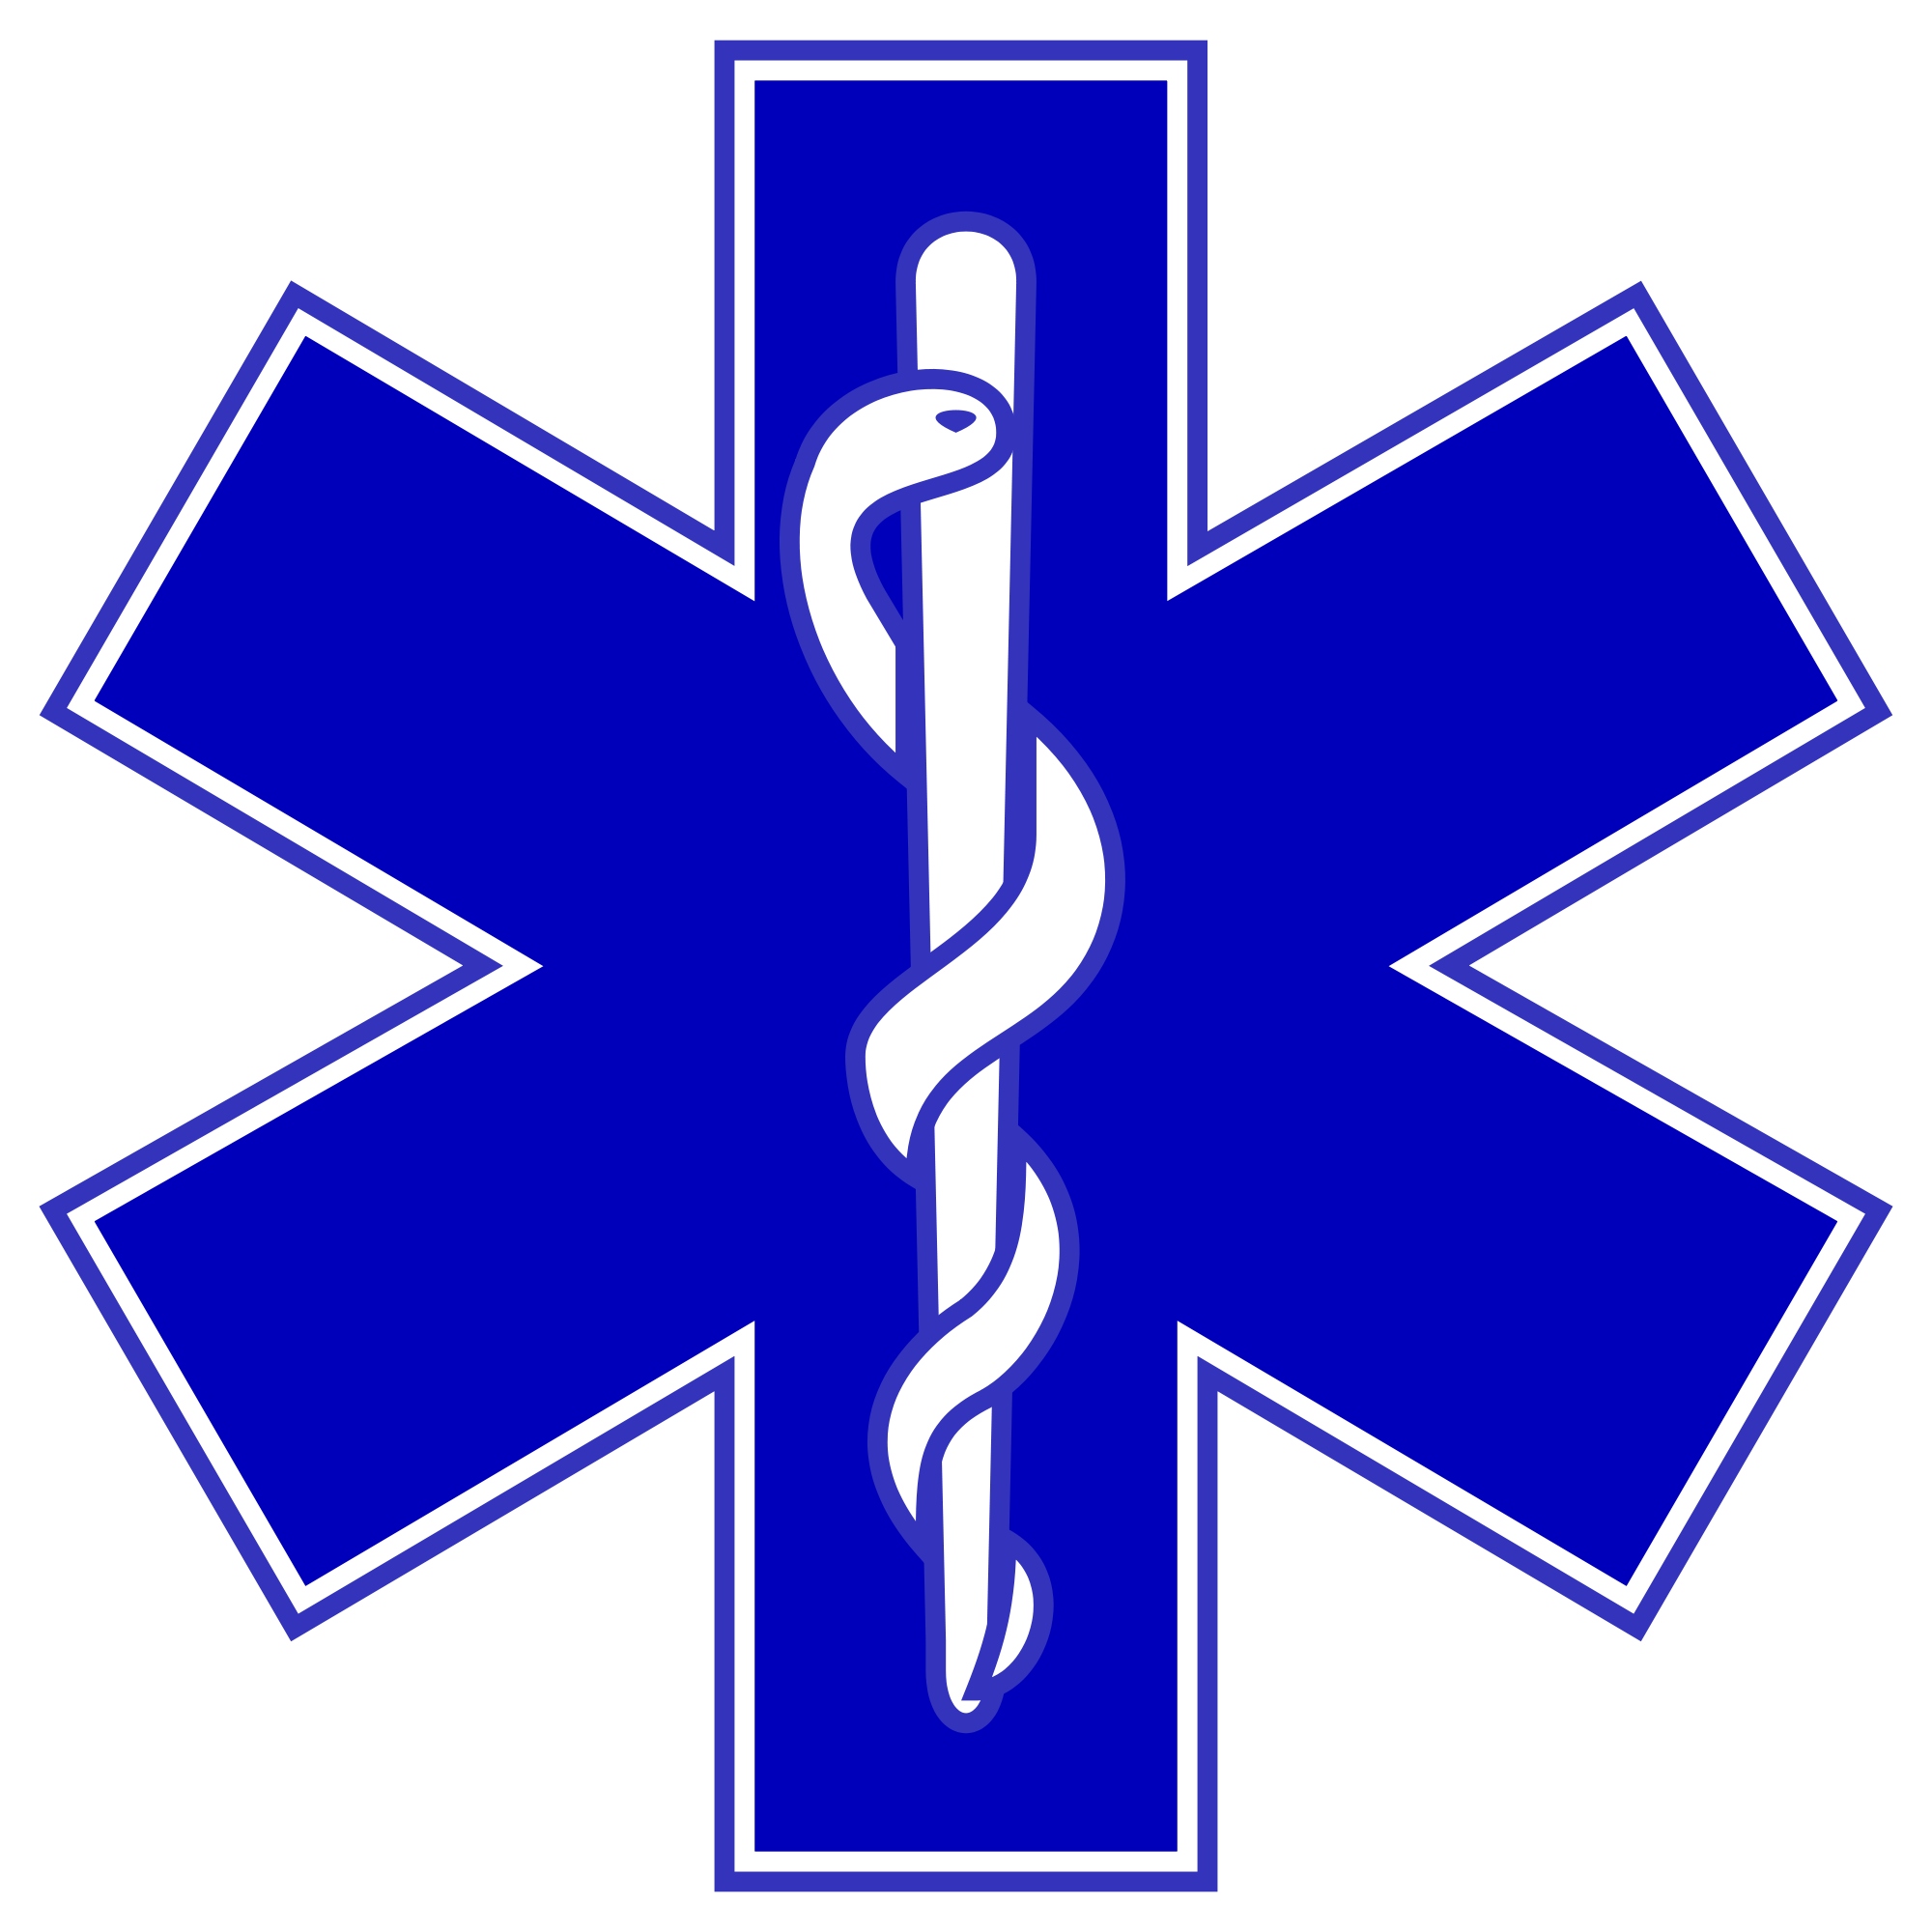 Ever wonder where the. Heartbeat clipart emt